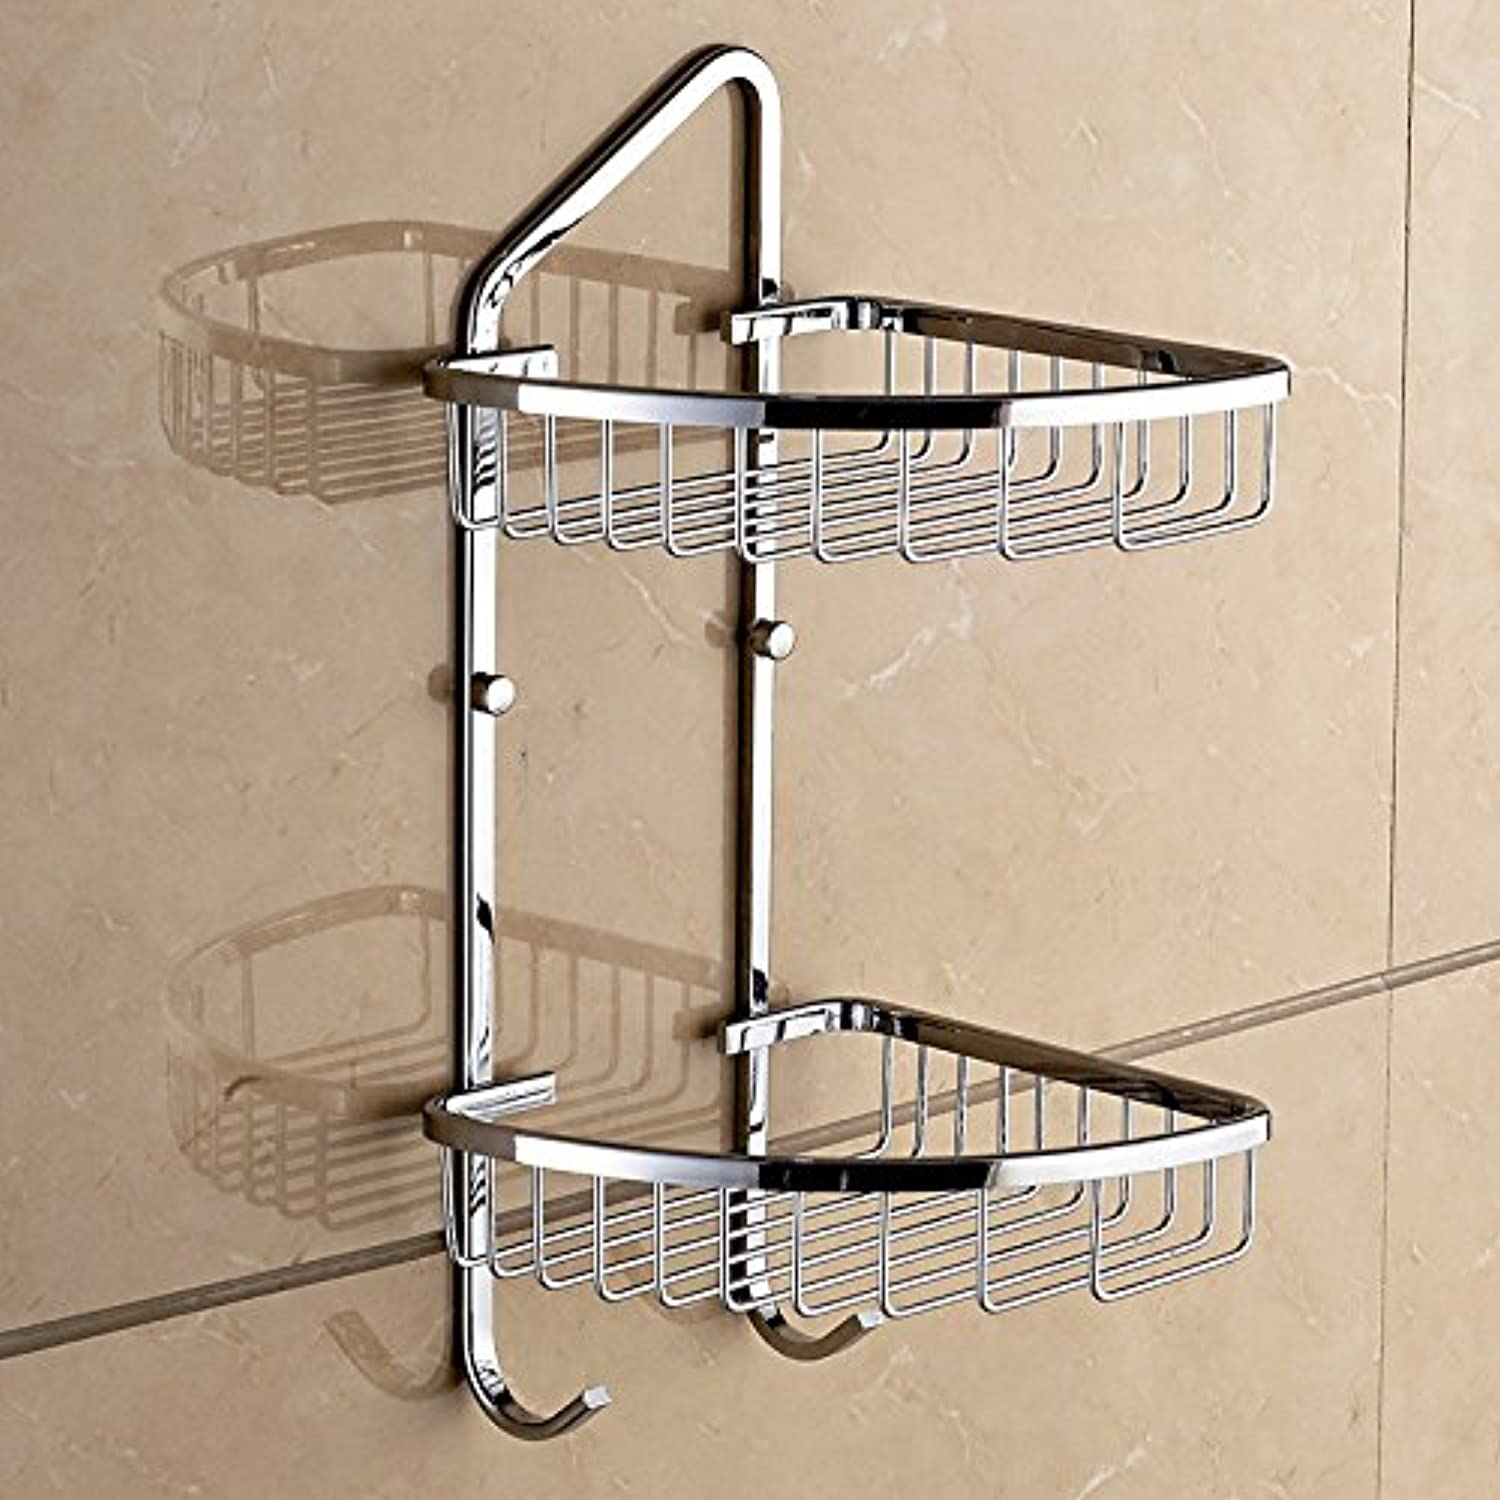 Stainless steel triangular basket stand single wall double corner baskets bathroom shelves bathroom corner shelf